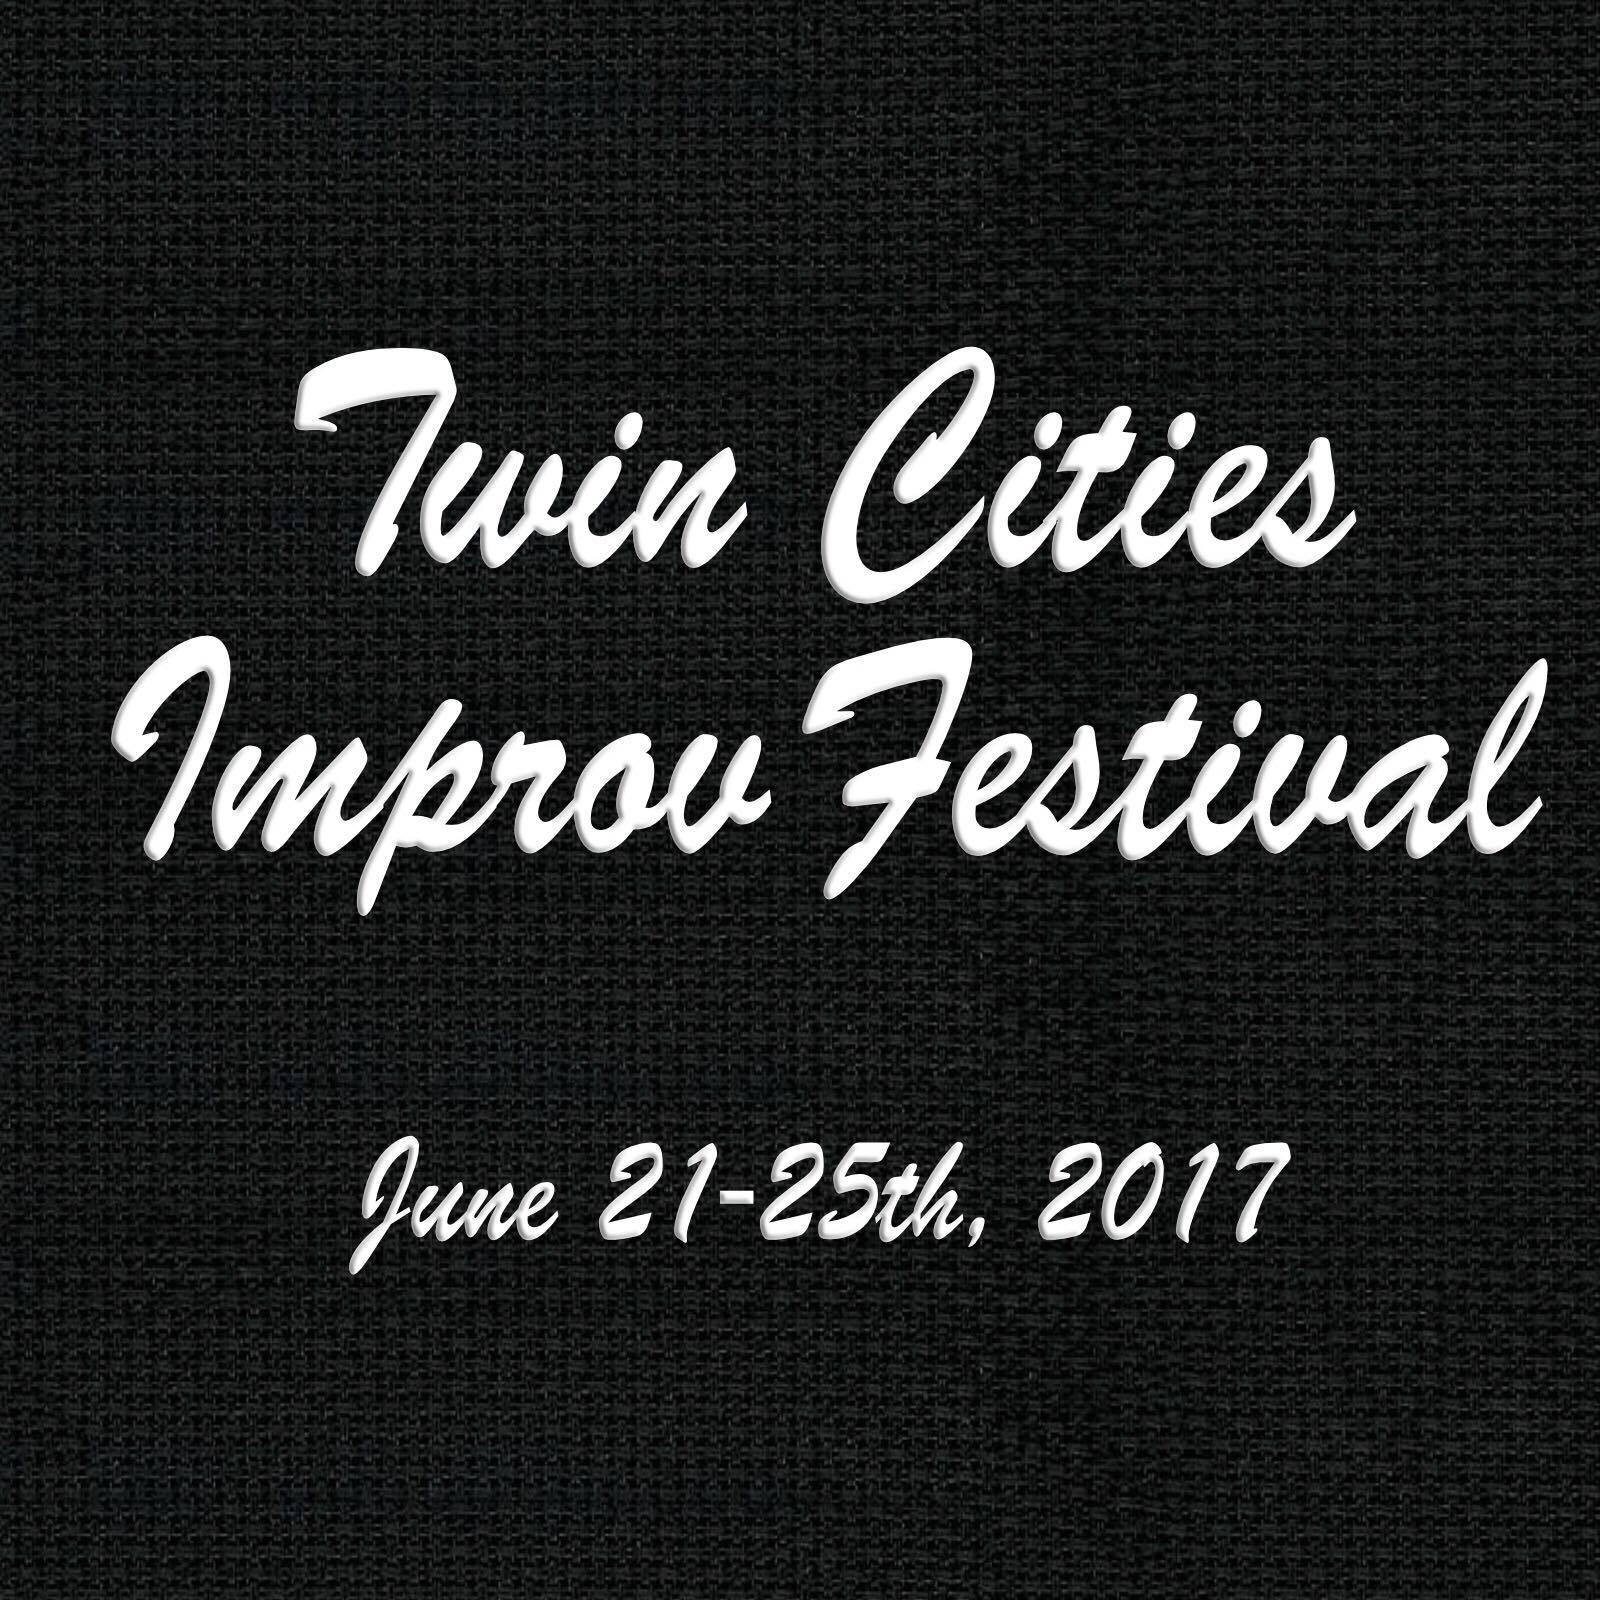 Twin Cities Improv Festival Podcast